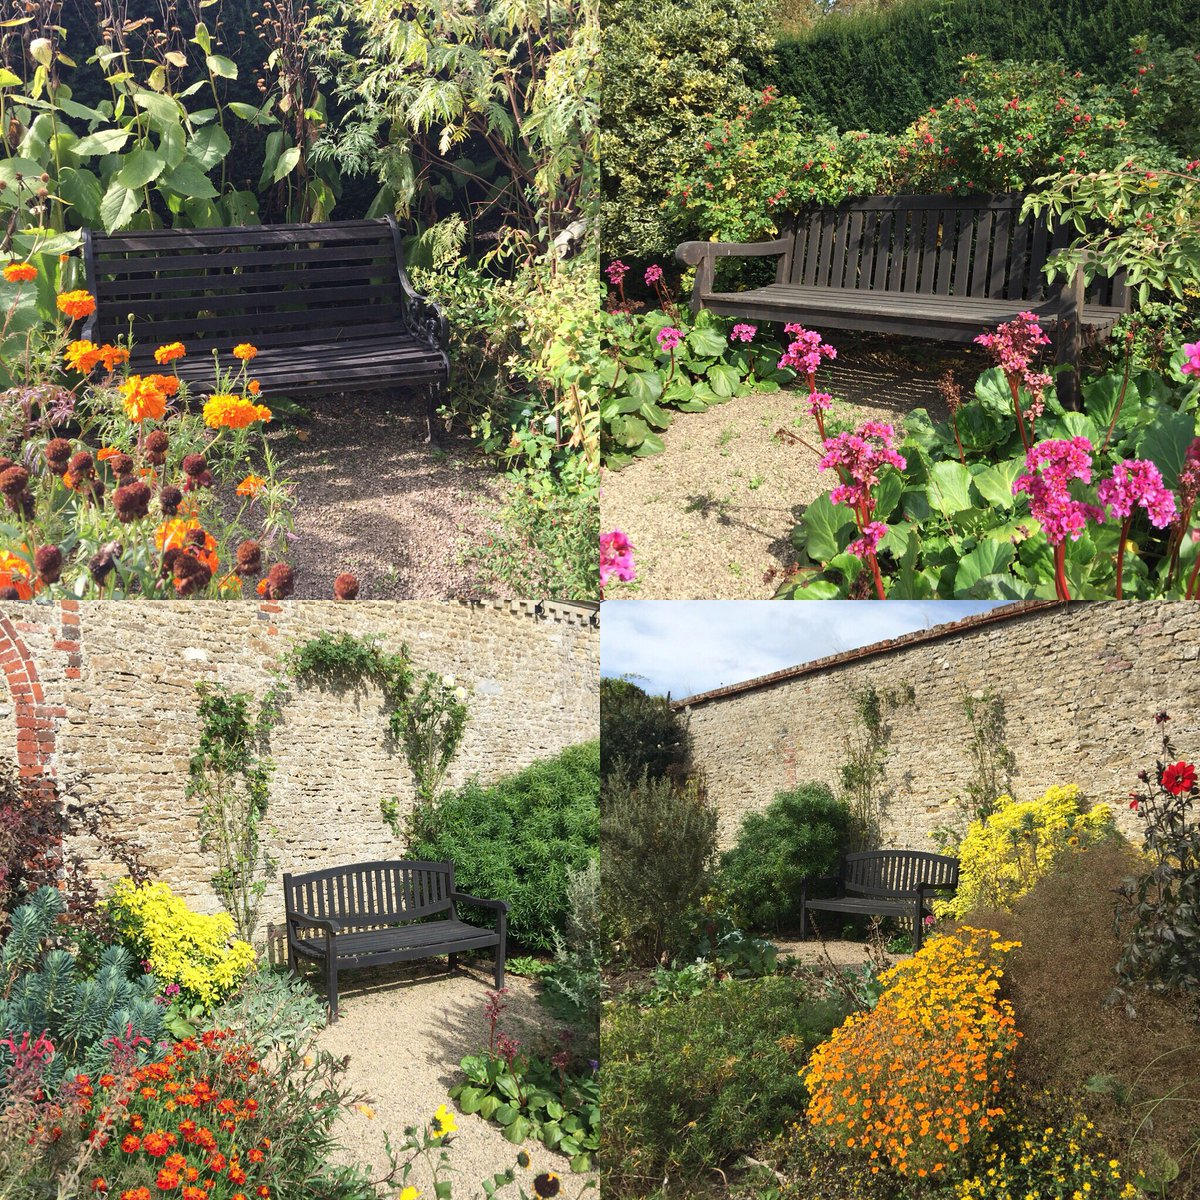 Are you sitting comfortably? Which seat would you choose to enjoy the autumn sunshine?😎@Loseleyevents #walledgarden #autumn #gardenbench #autumnweather #autumnwedding